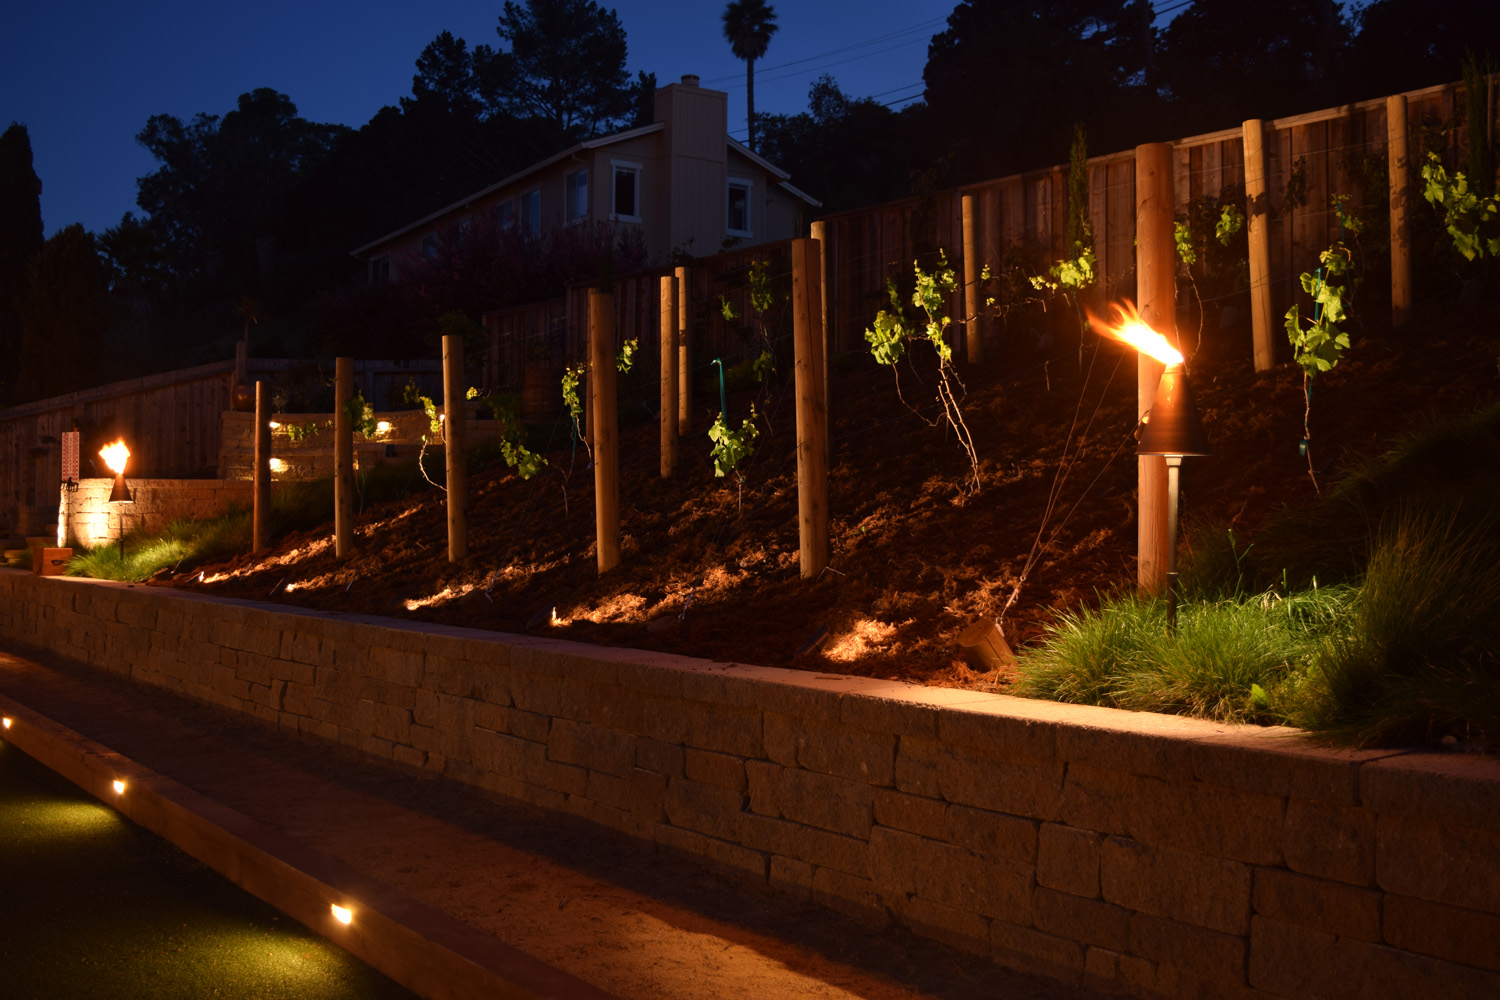 Vineyard lights